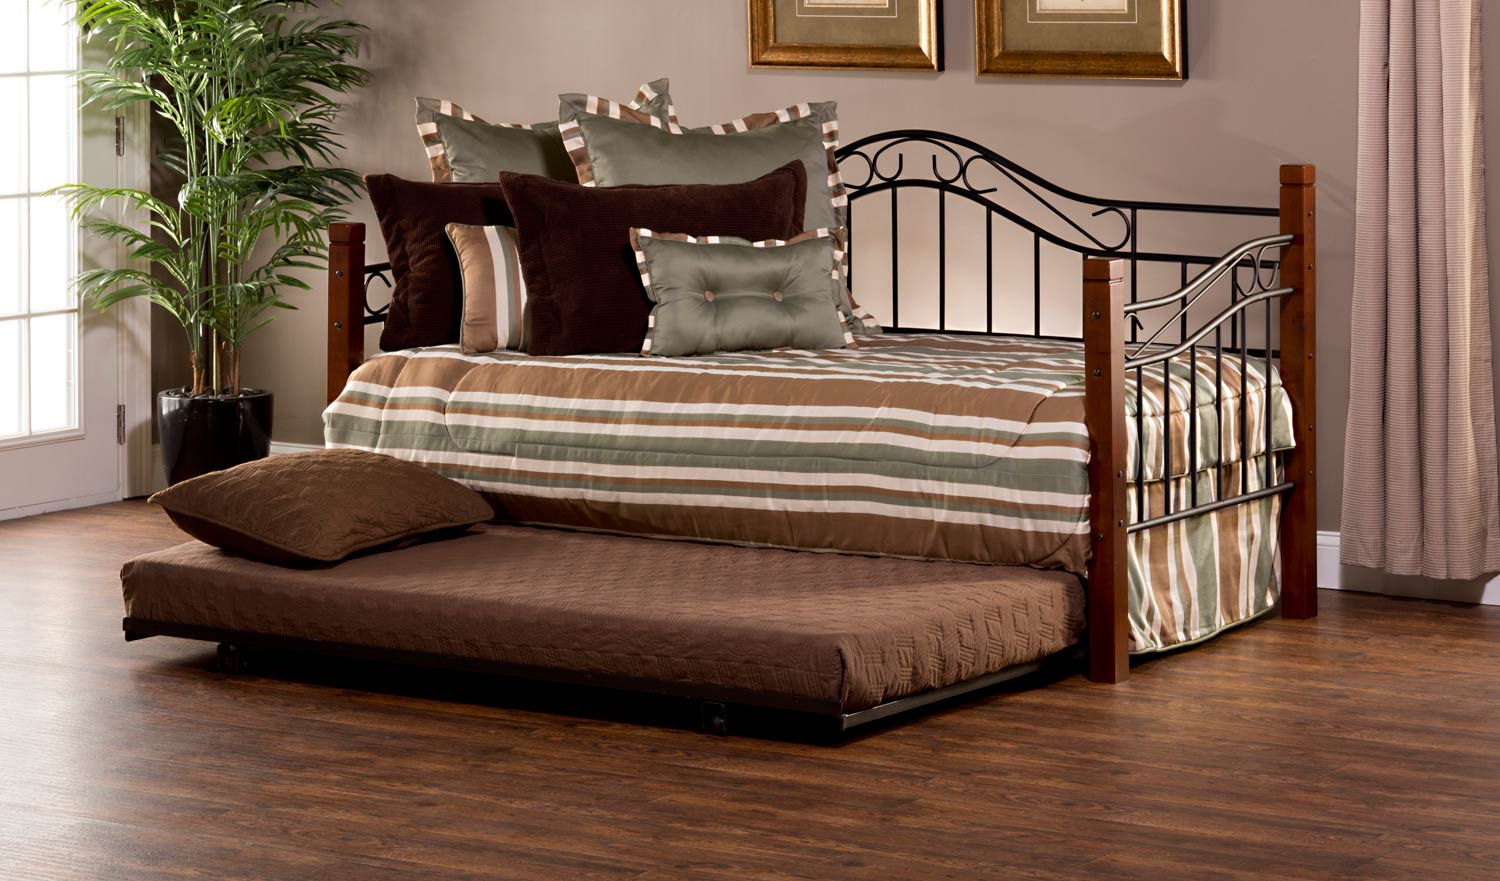 Hillsdale Matson Daybed with Suspension Deck and Trundle - Cherry/Black